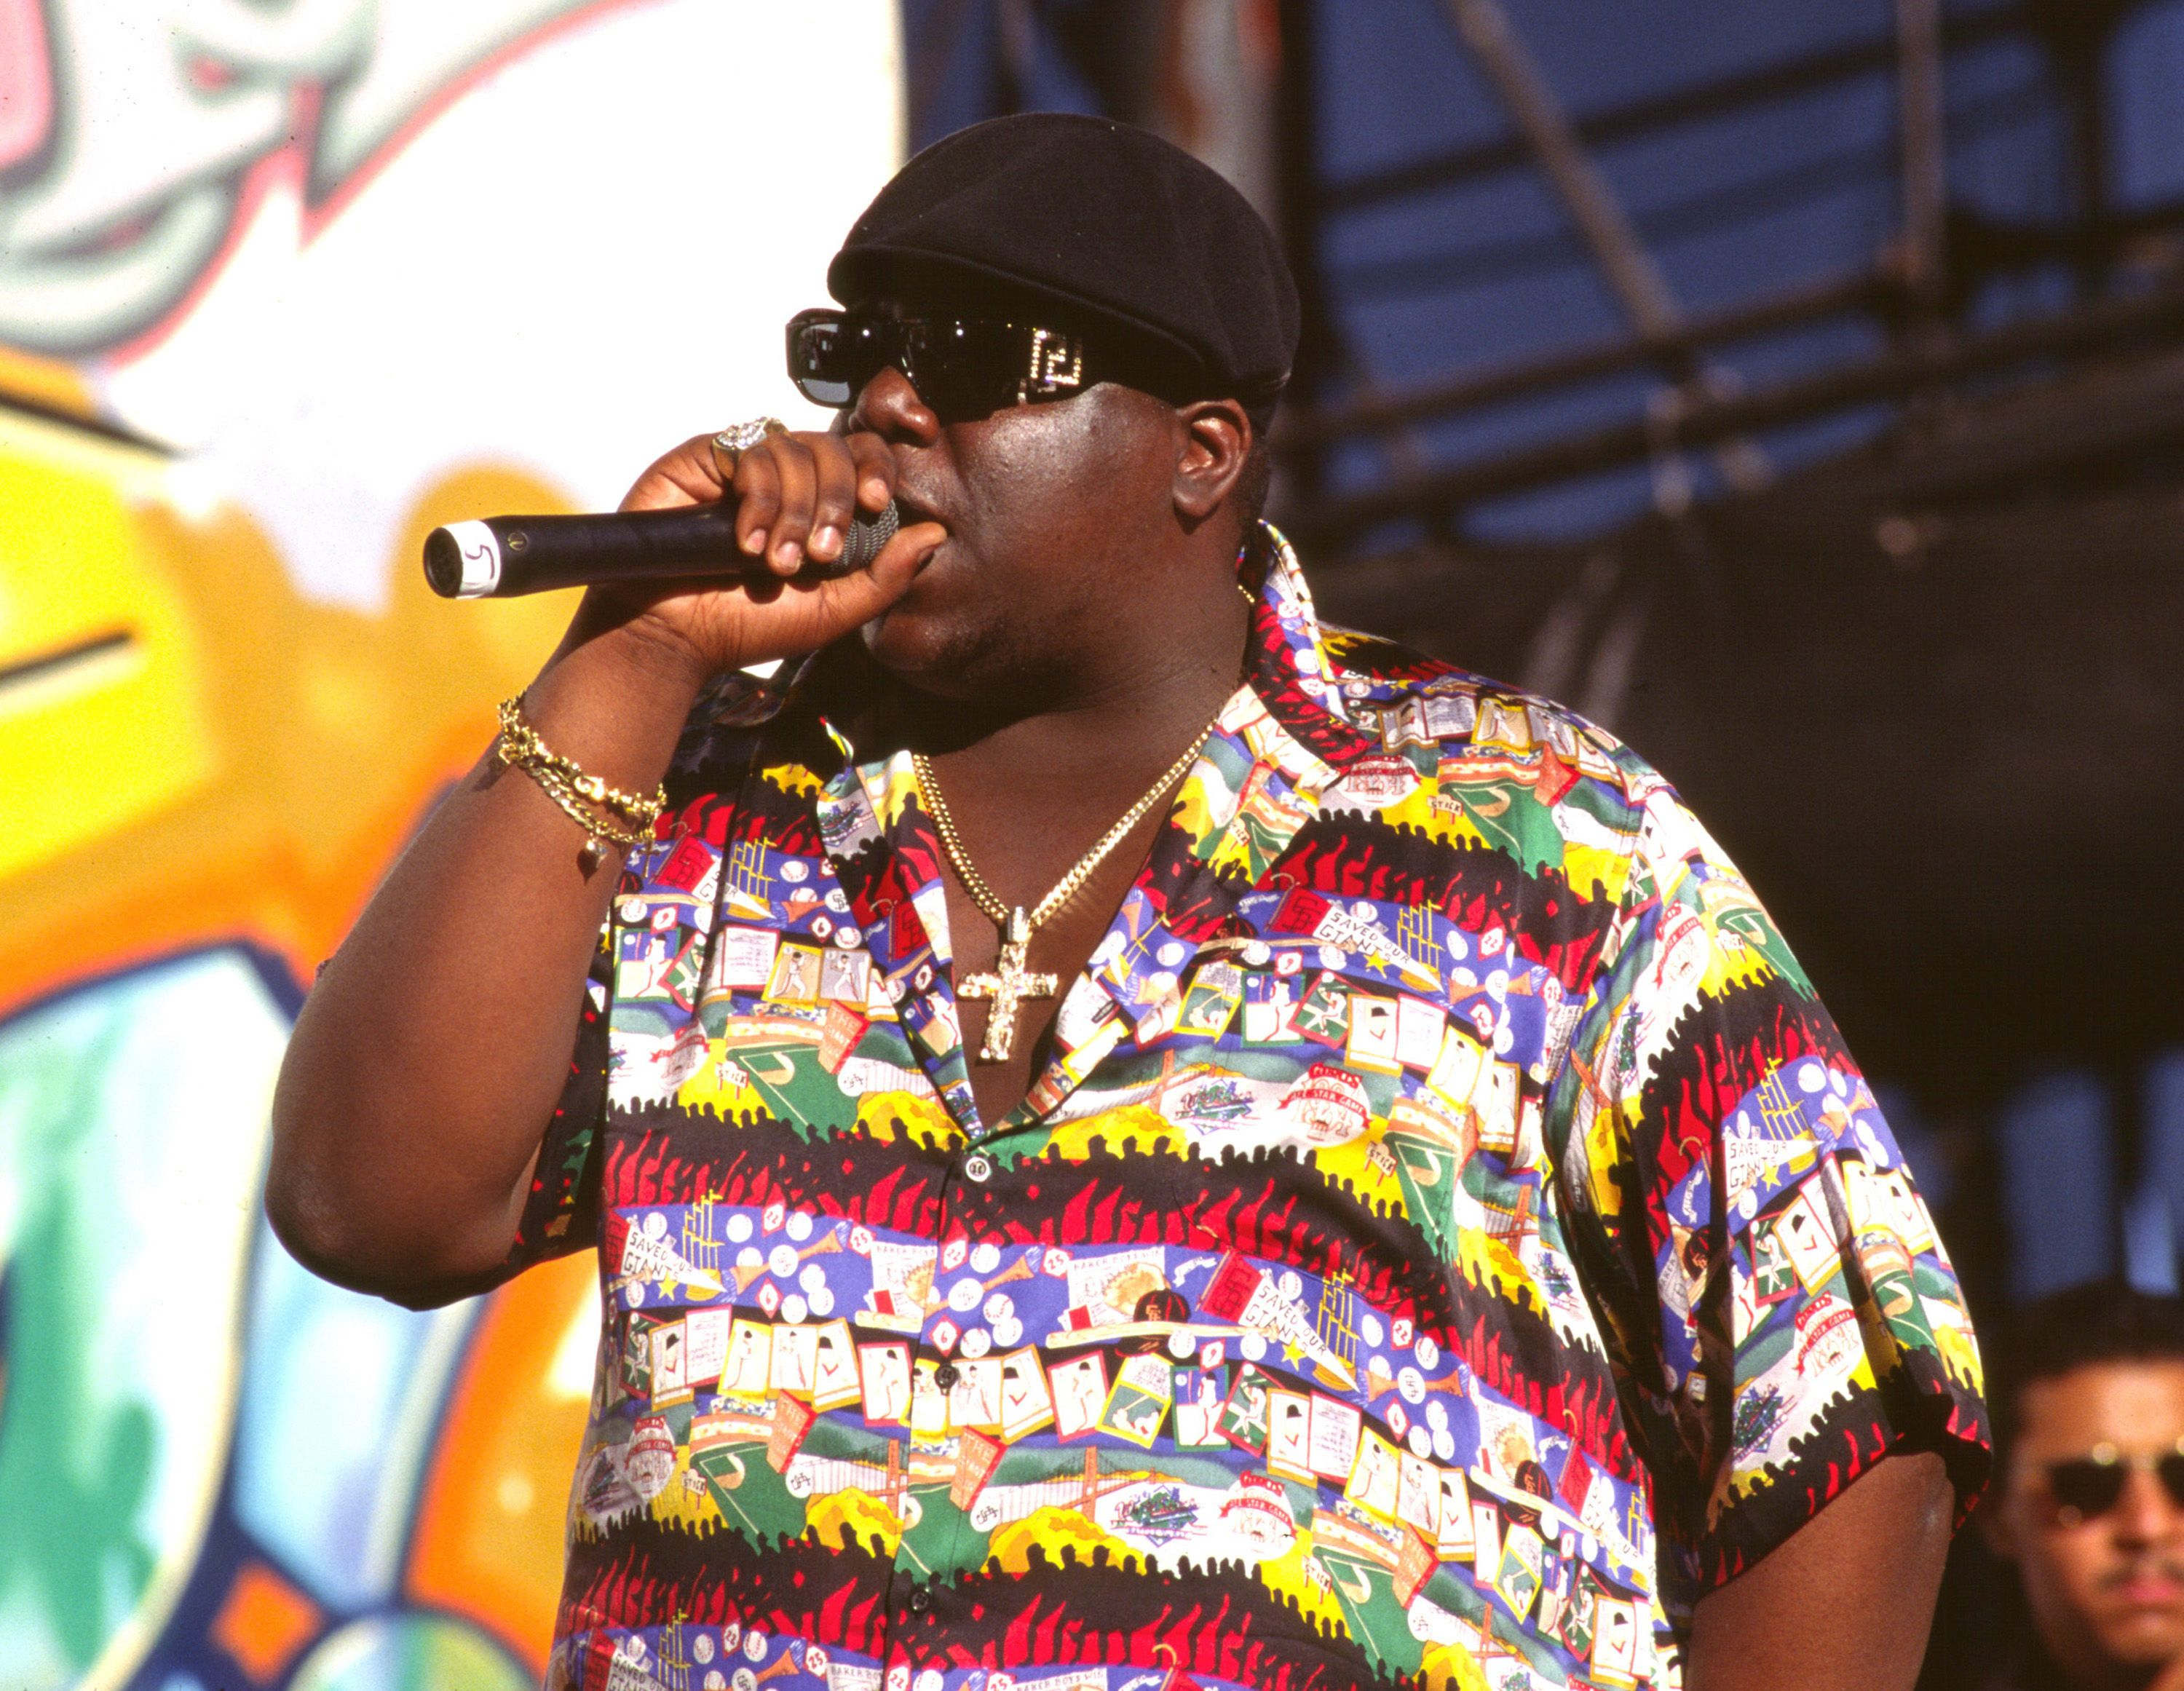 840ce9edc19 Notorious B.I.G. s Iconic Versace Sunglasses Are Finally Back (But Not For  Long)